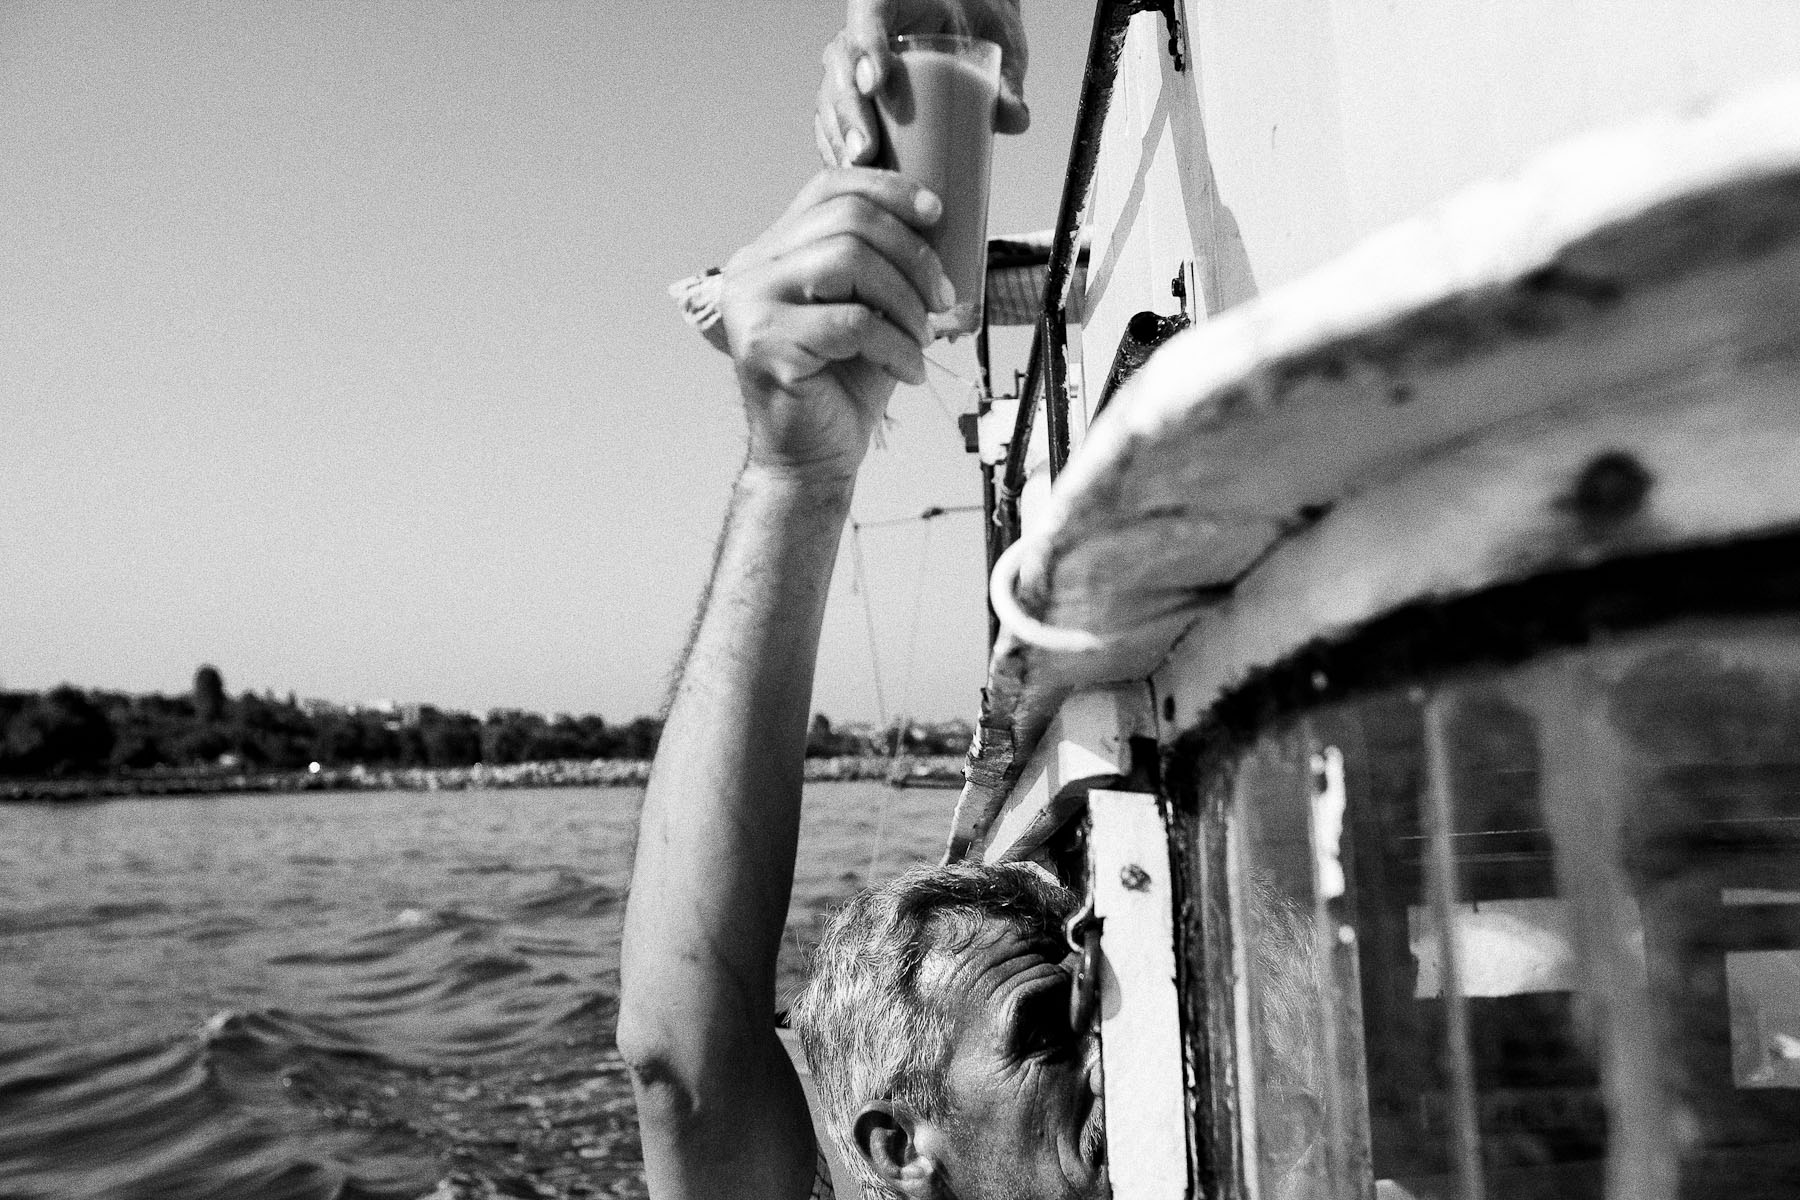 Cevat Sariaydin hands a cup of coffee to Adem Golak, who is steering the boat on the tiny rooftop cabin, as they head out to fish on the Marmara sea on 21st June 2010. Coffee is the basic tool for staying awake and alert all throughout the night, when they fish because it is cool enough for the fishermen and the fish.